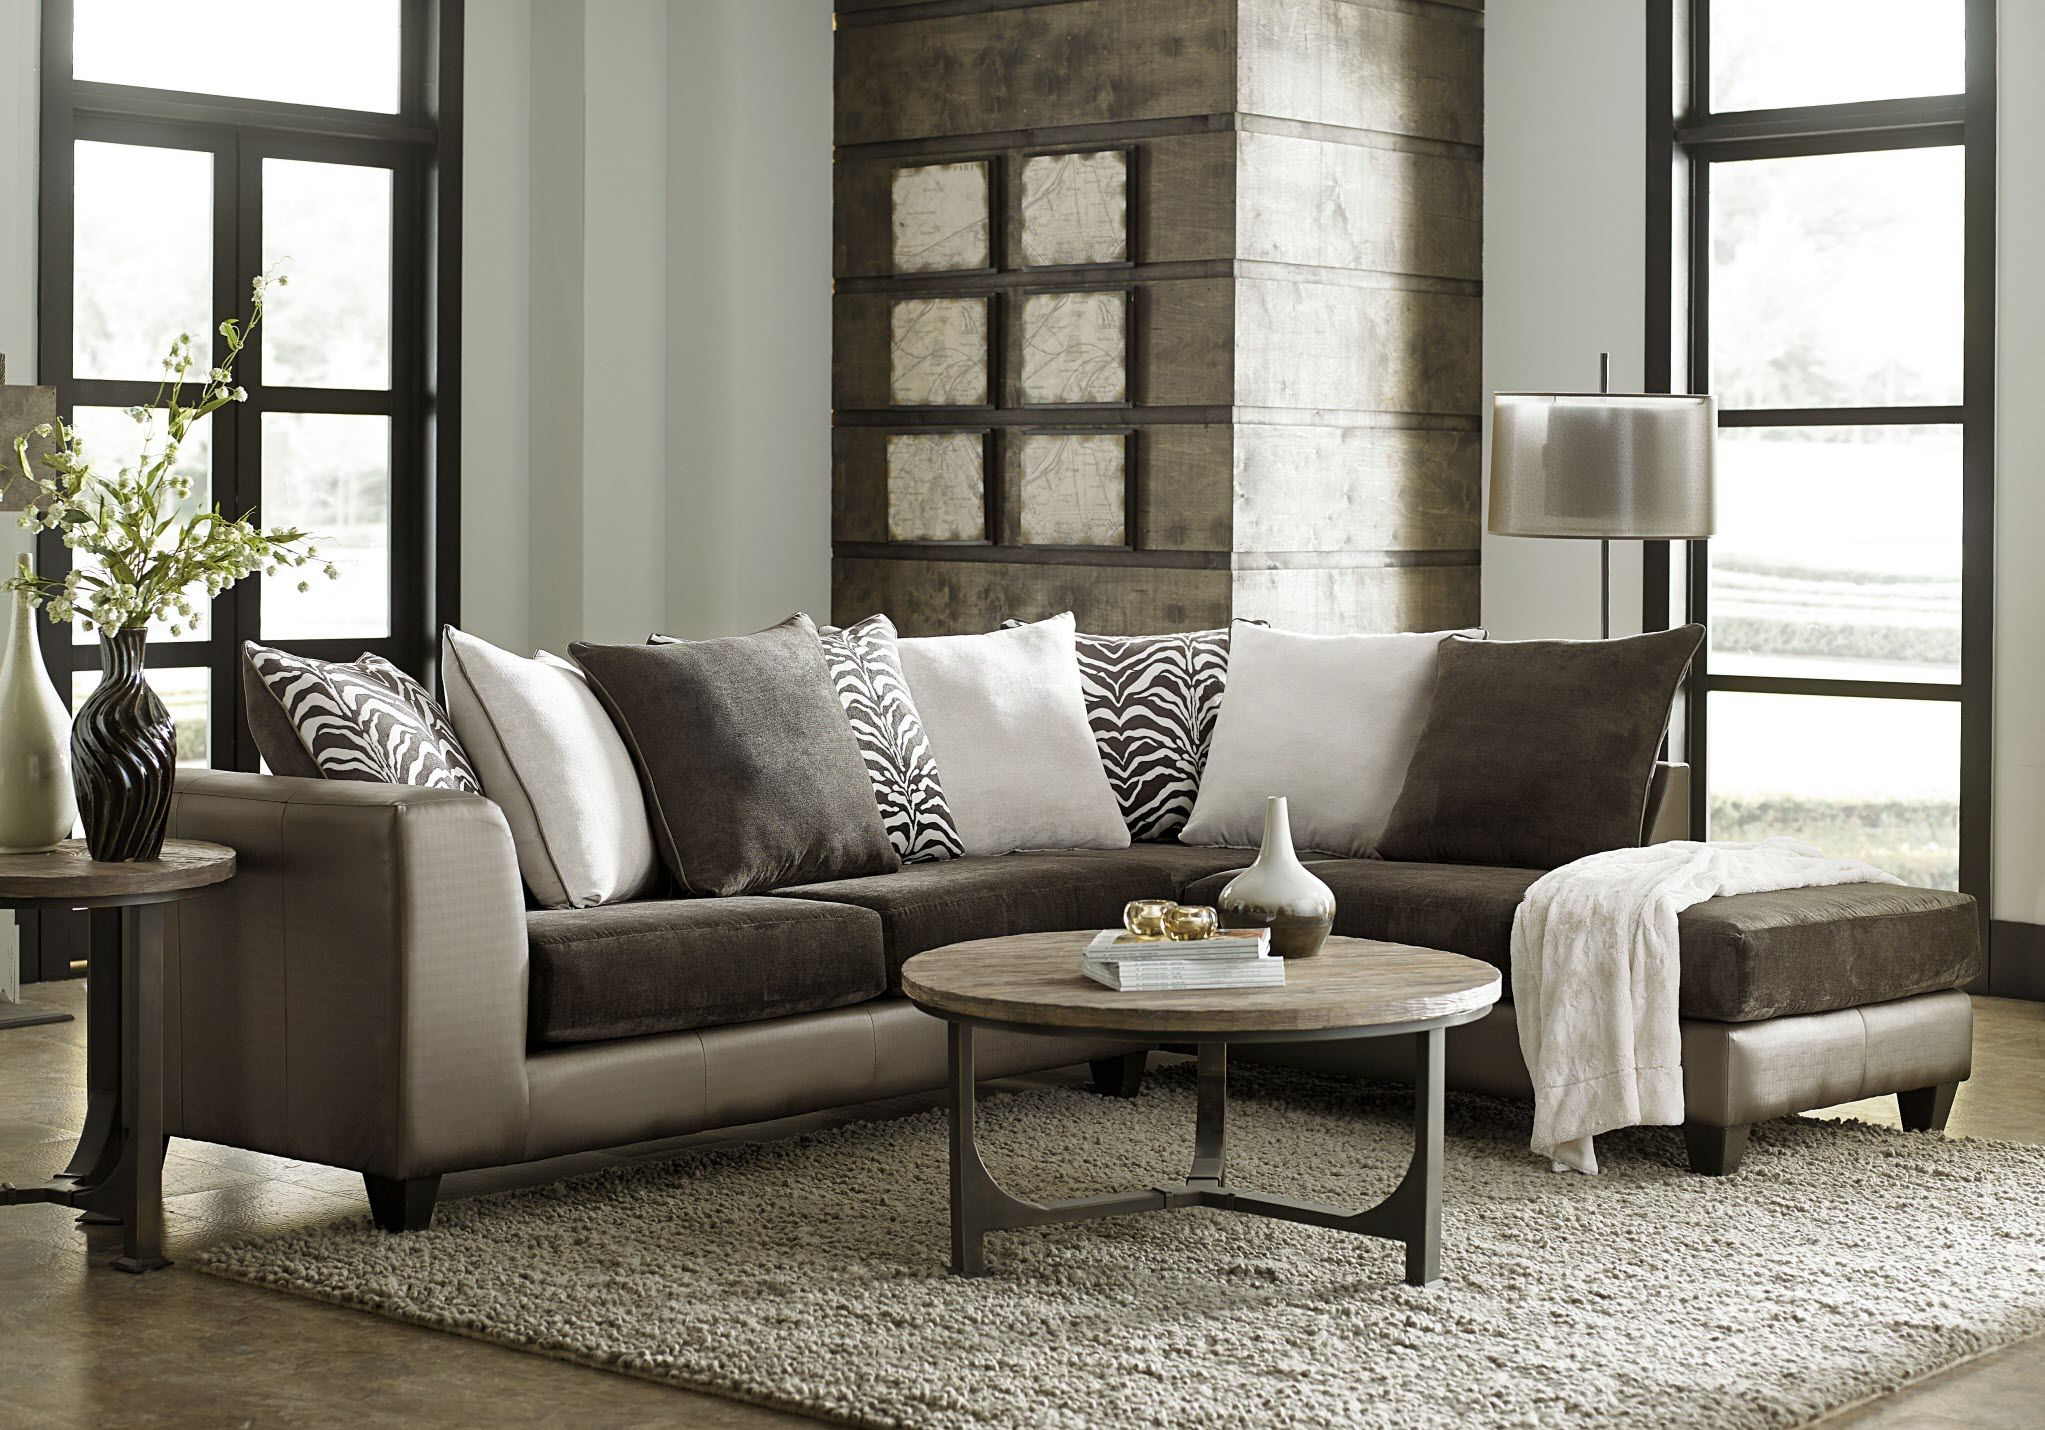 added raf chaise qty spaces cart w pdp piece sectional been wraf to grey successfully your living cosmos has